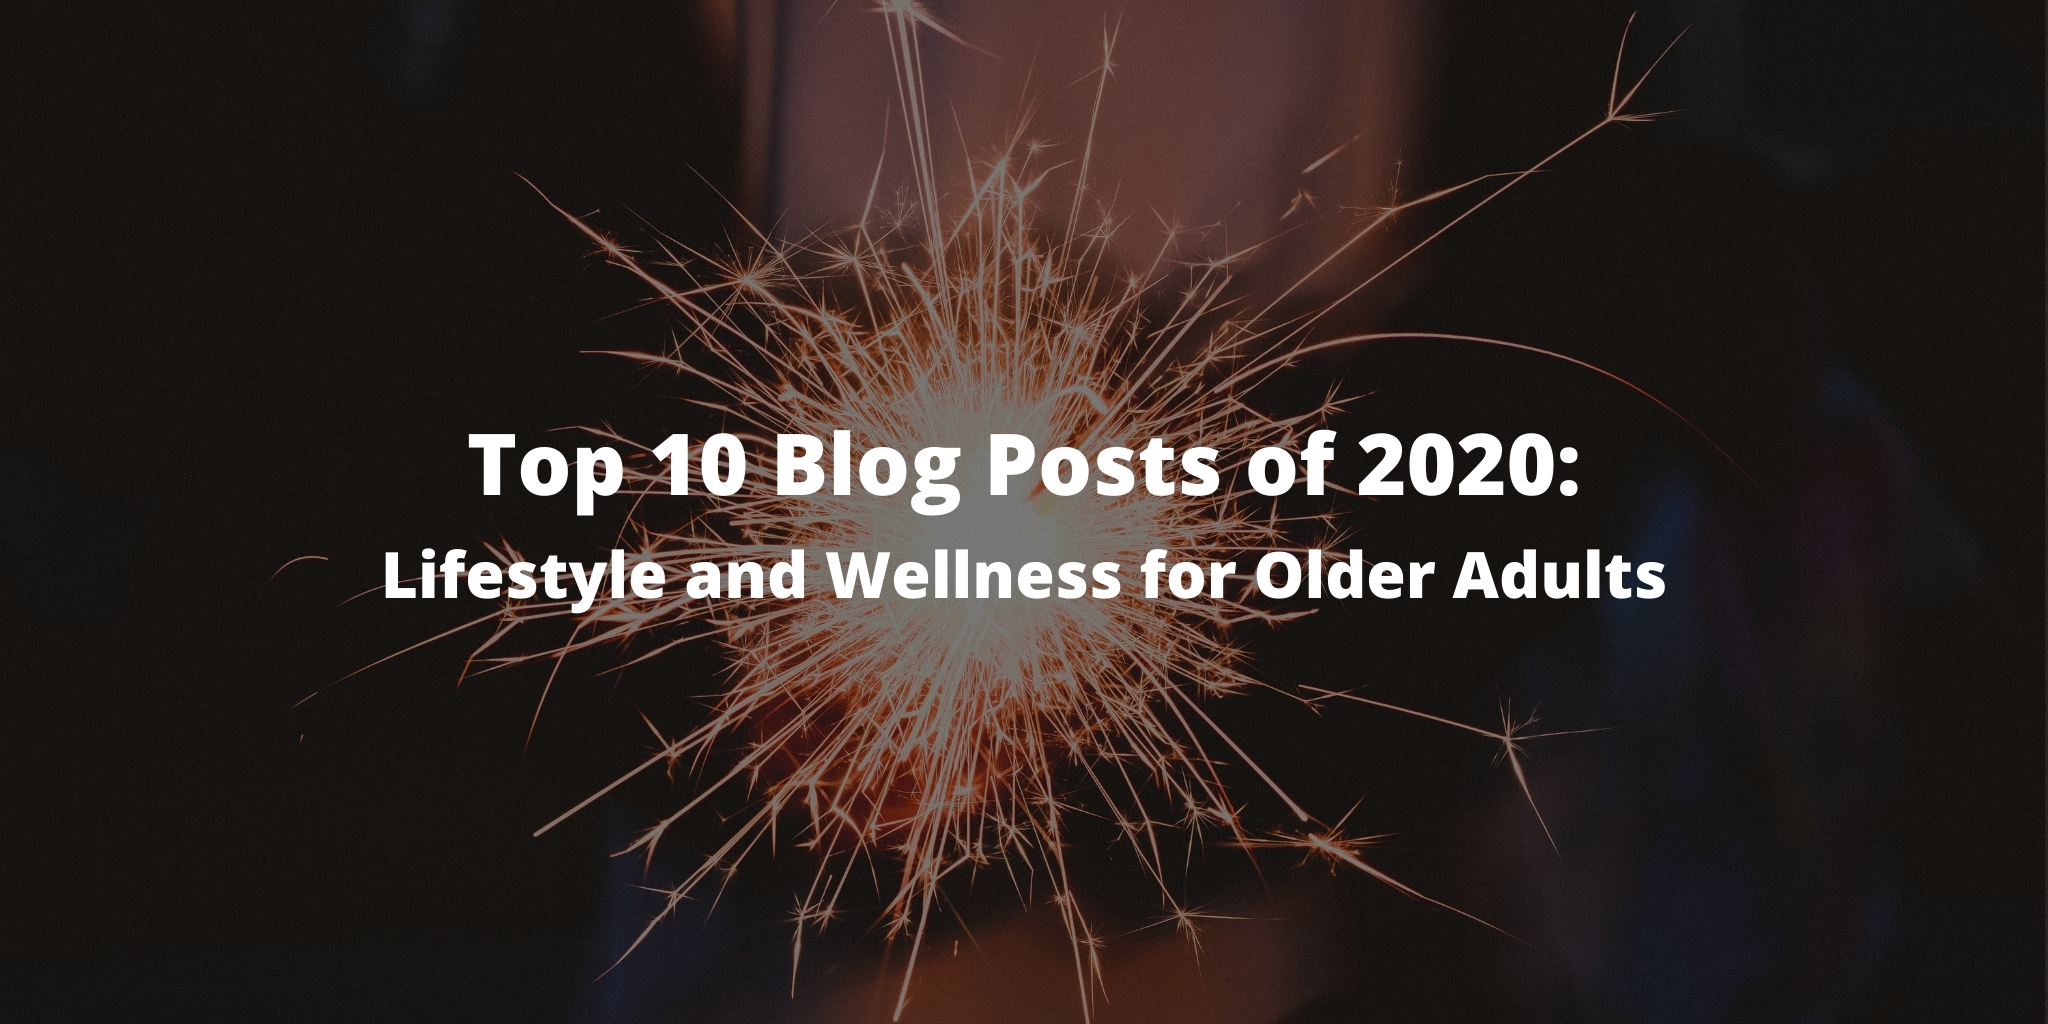 Top 10 Blog Posts of 2020: Lifestyle and Wellness for Older Adults